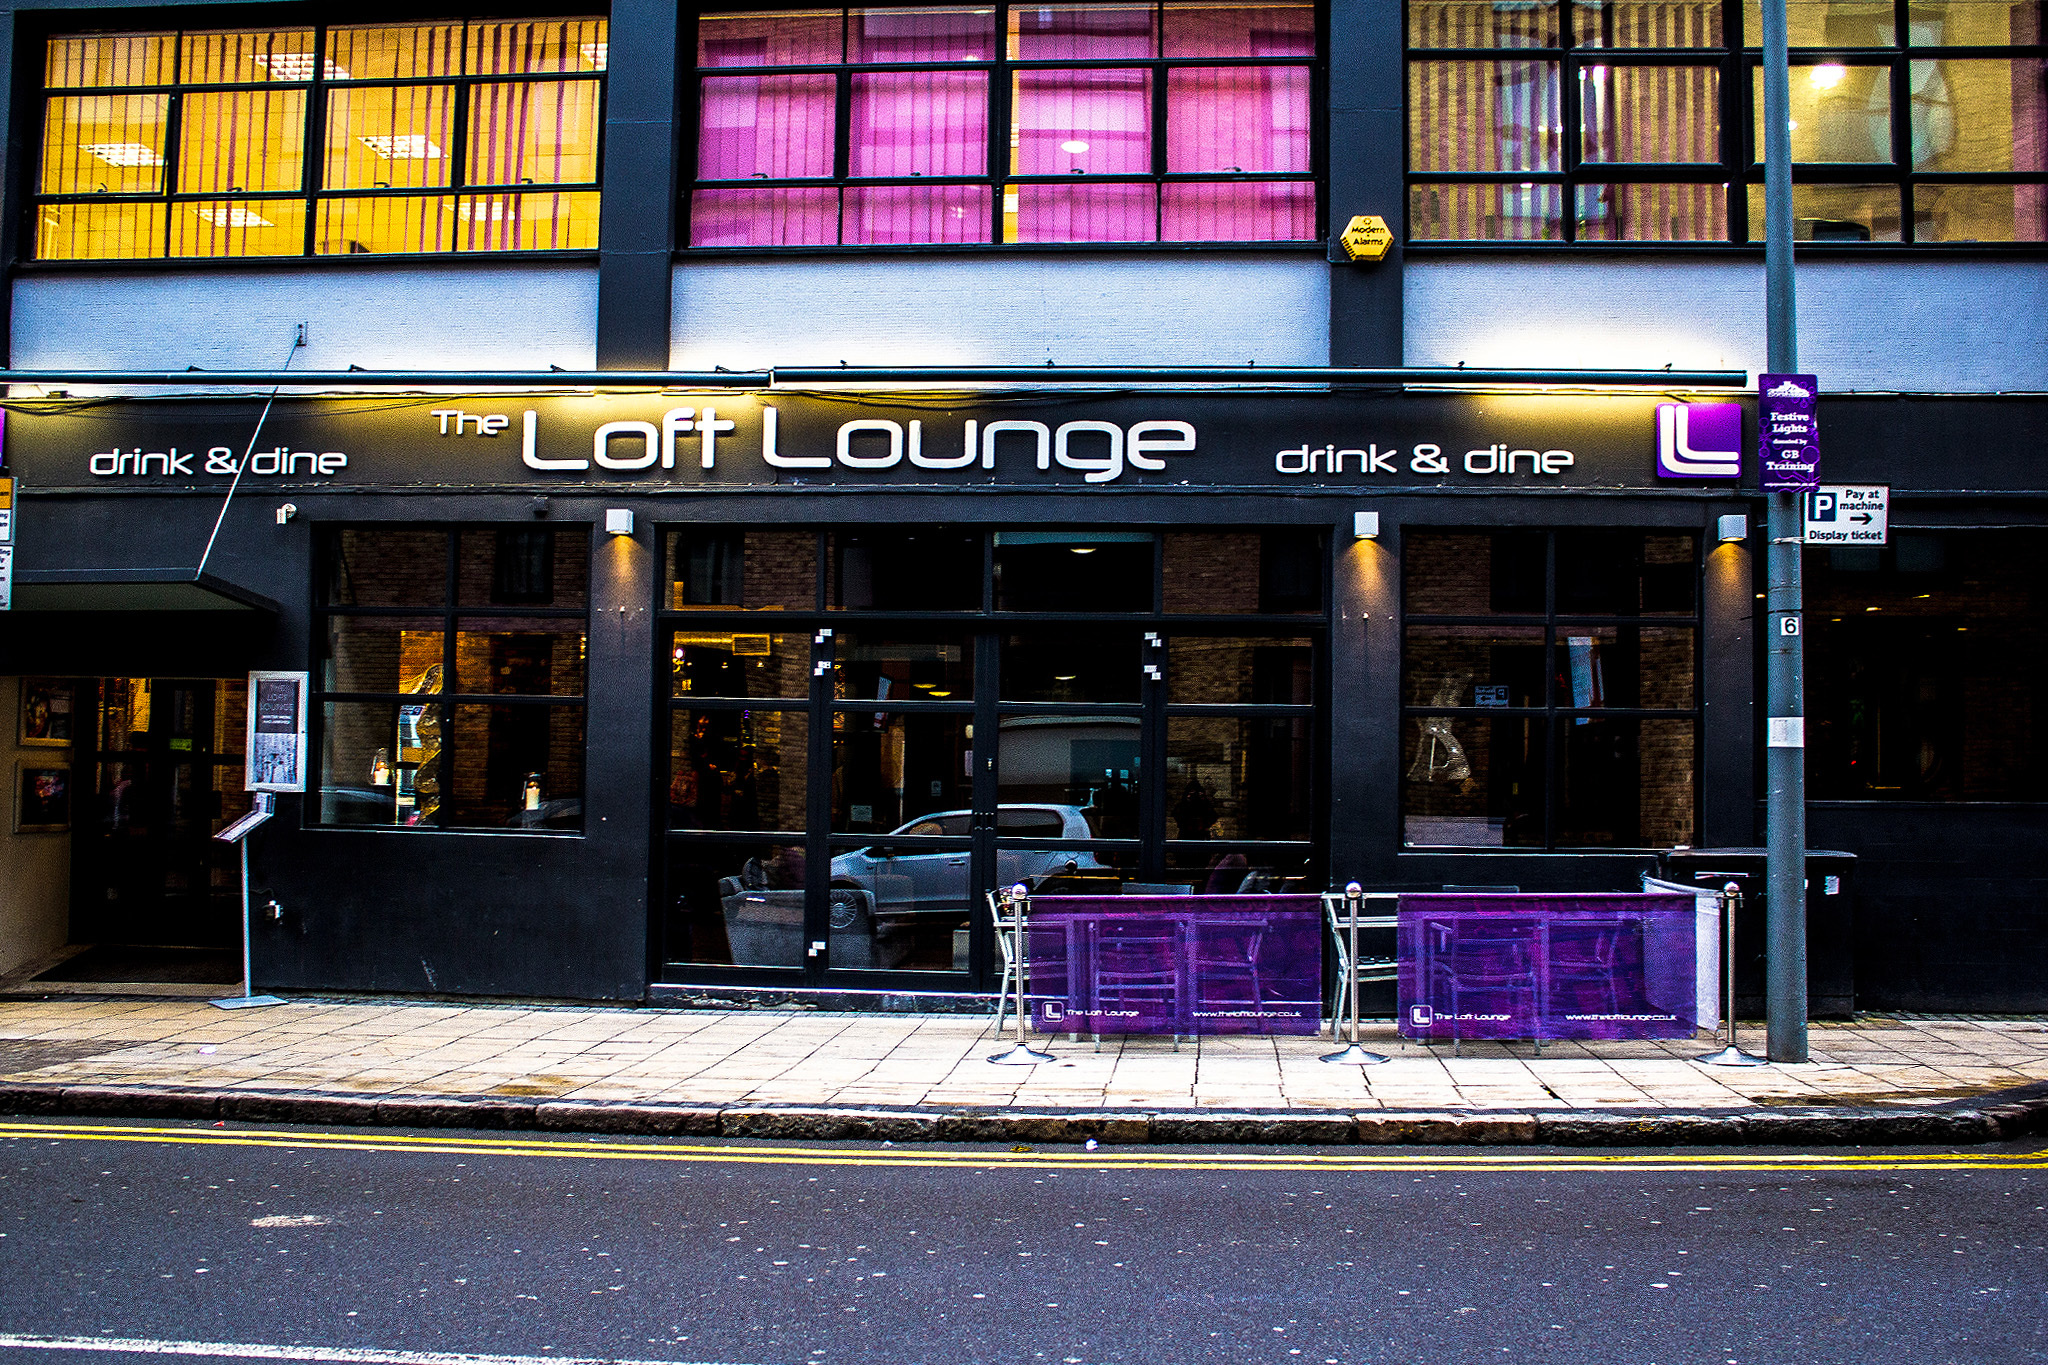 The Loft Lounge, bar